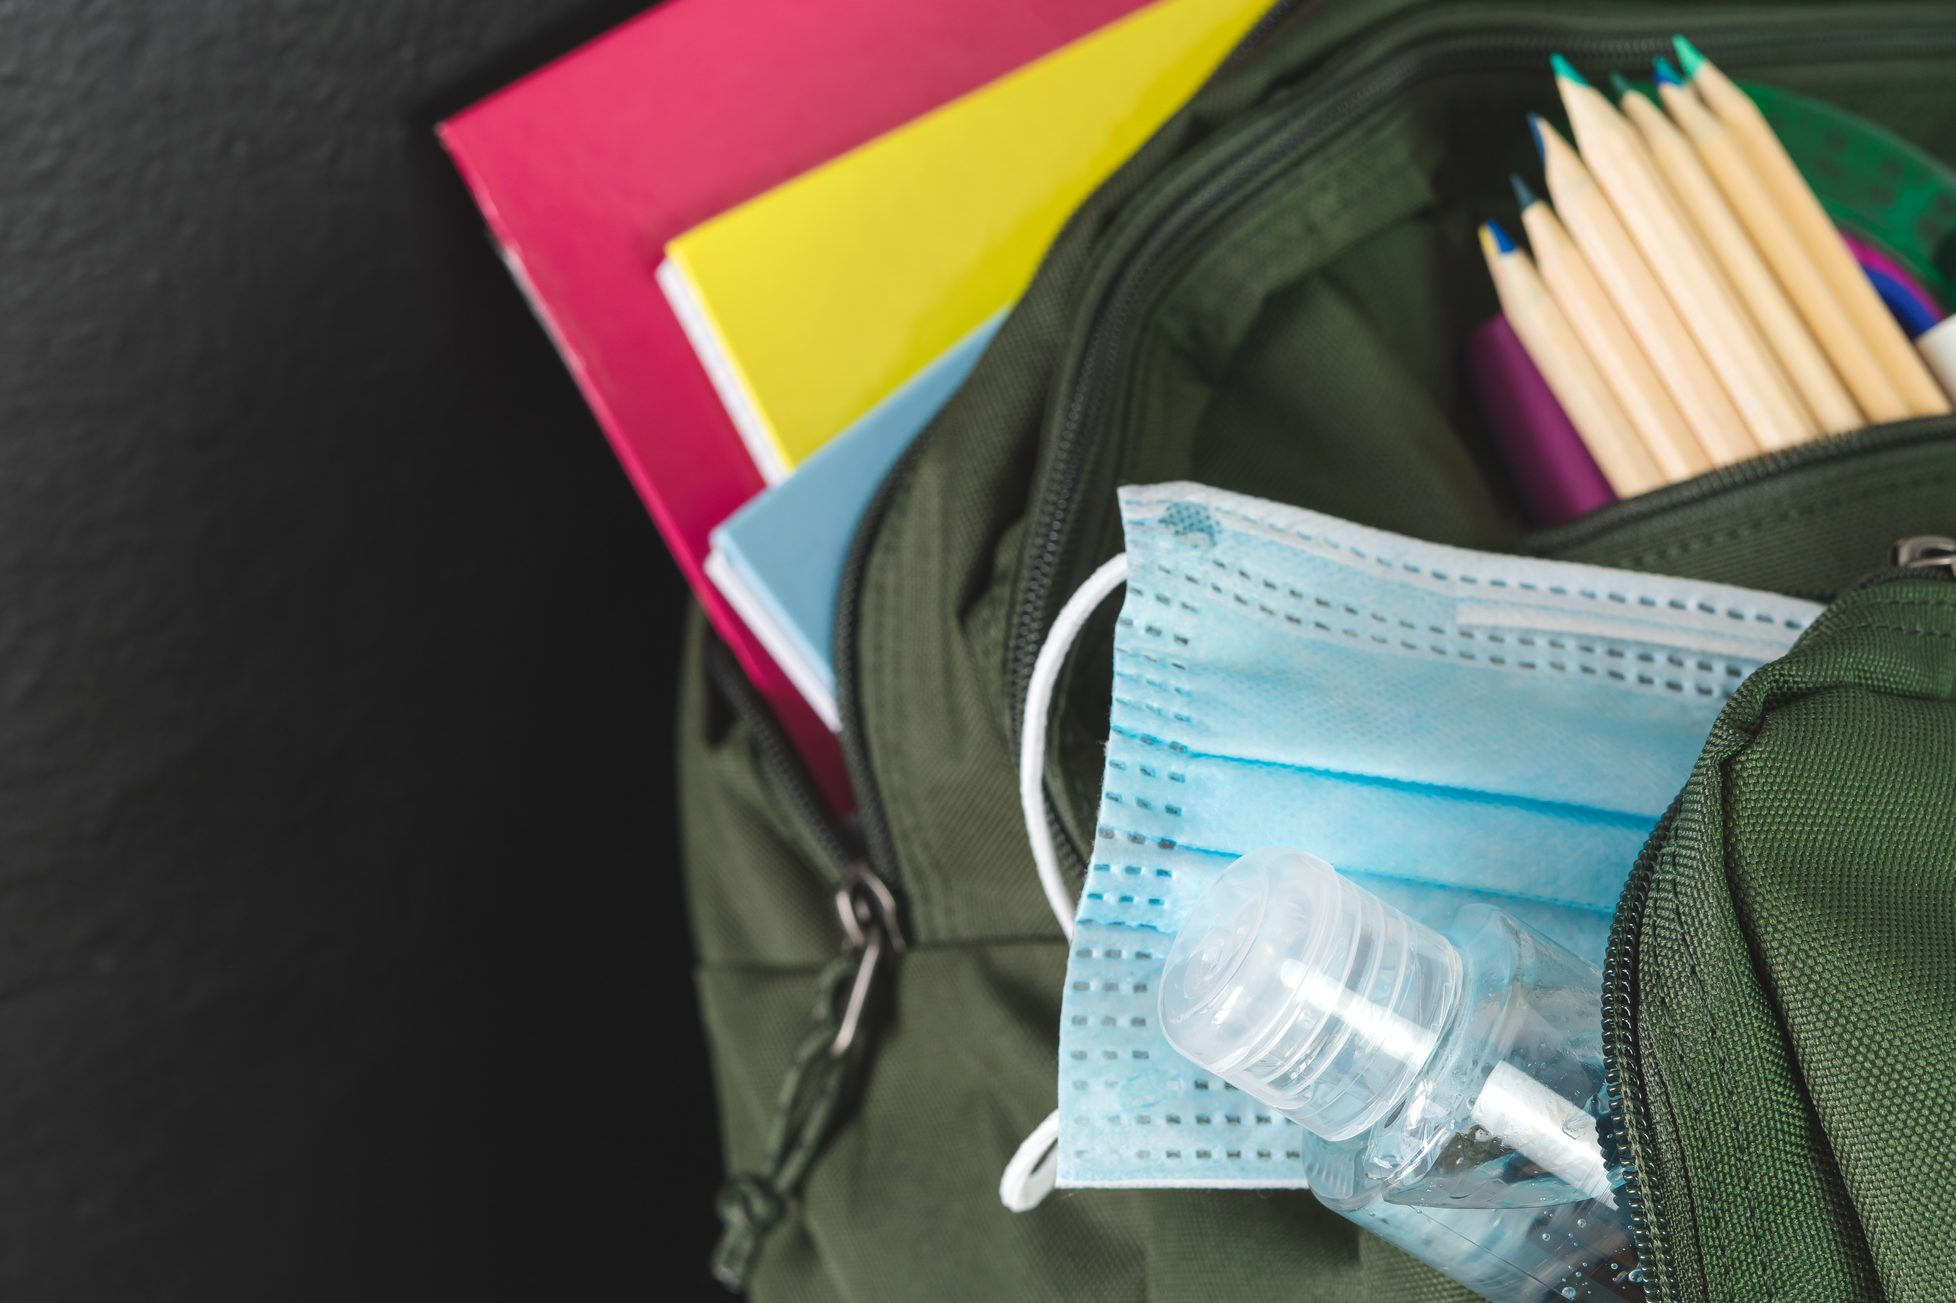 Backpack prepared with study supplies and mask for the return to school. Covid-19 concept.